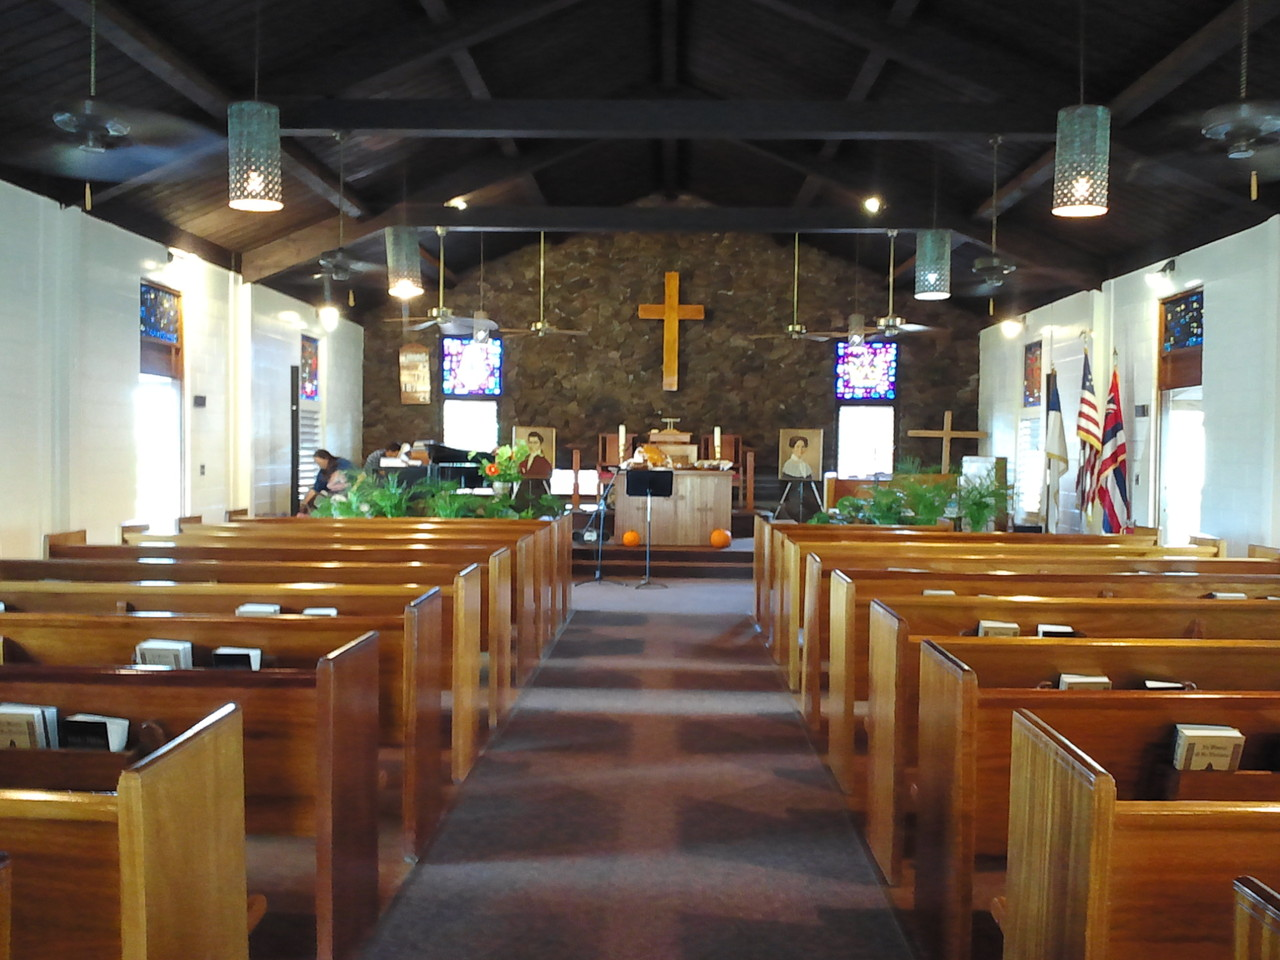 Lili'uokalani Church